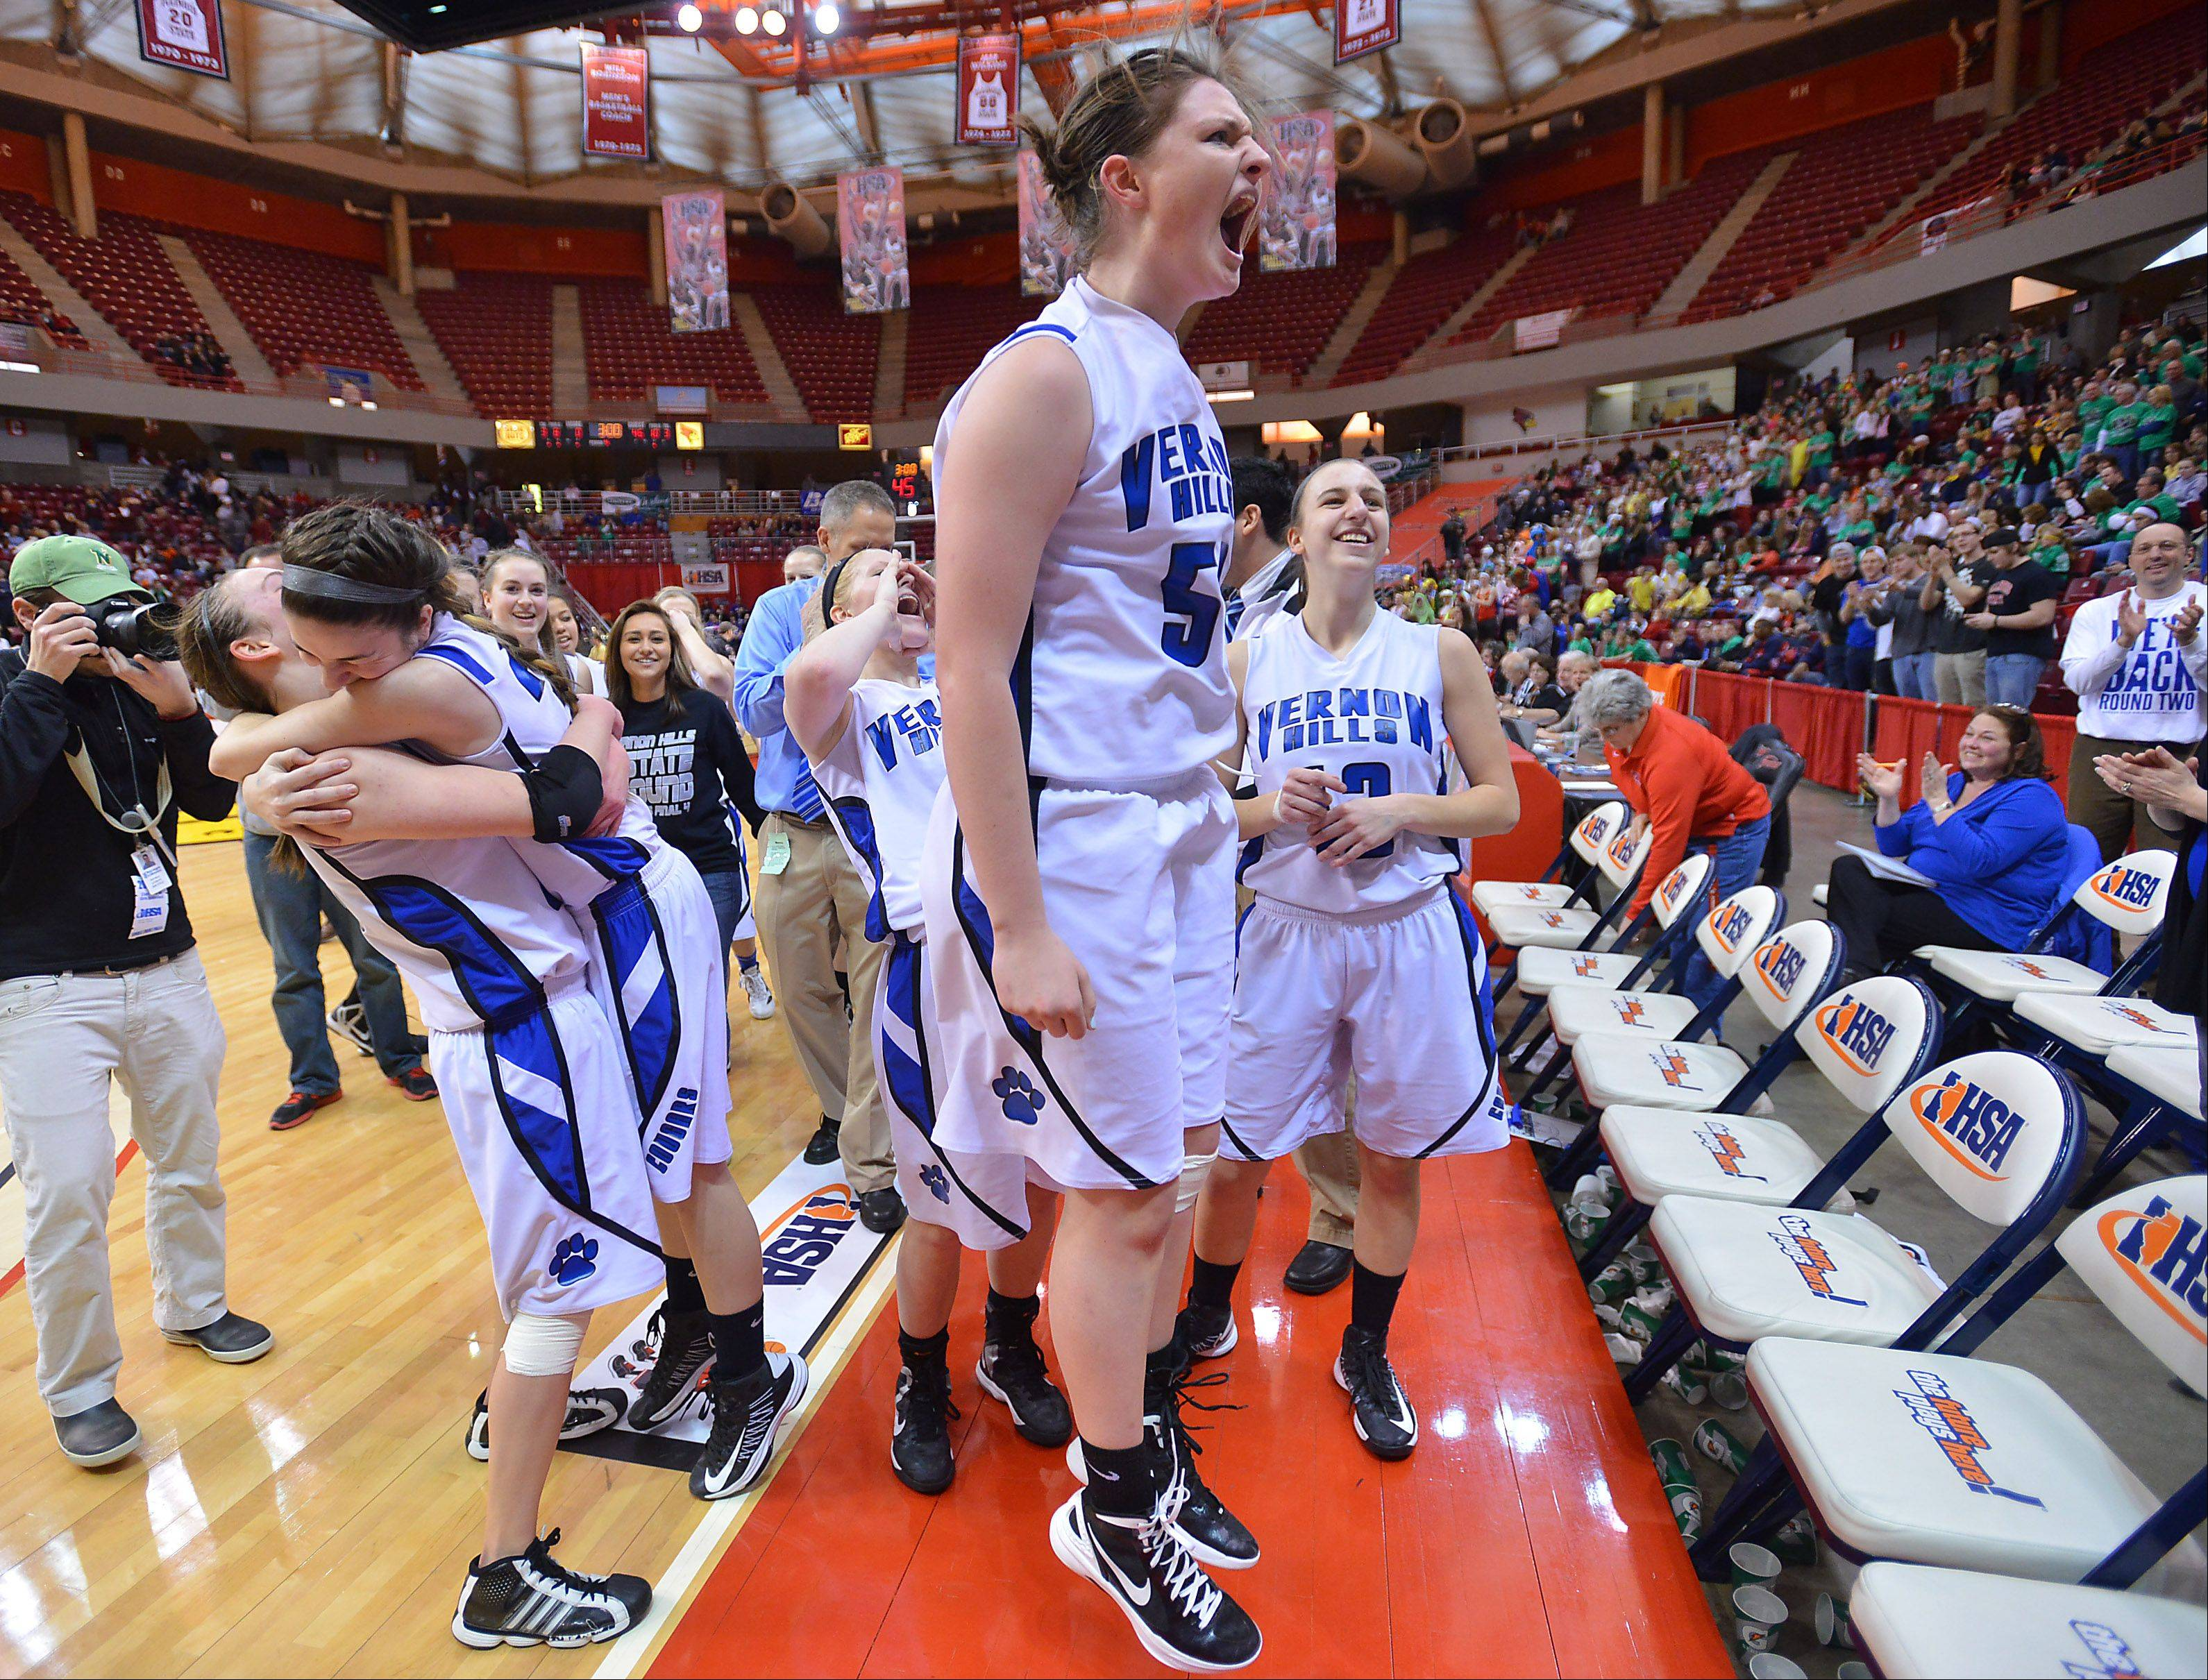 Vernon Hills stuns Montini in Class 3A semifinal